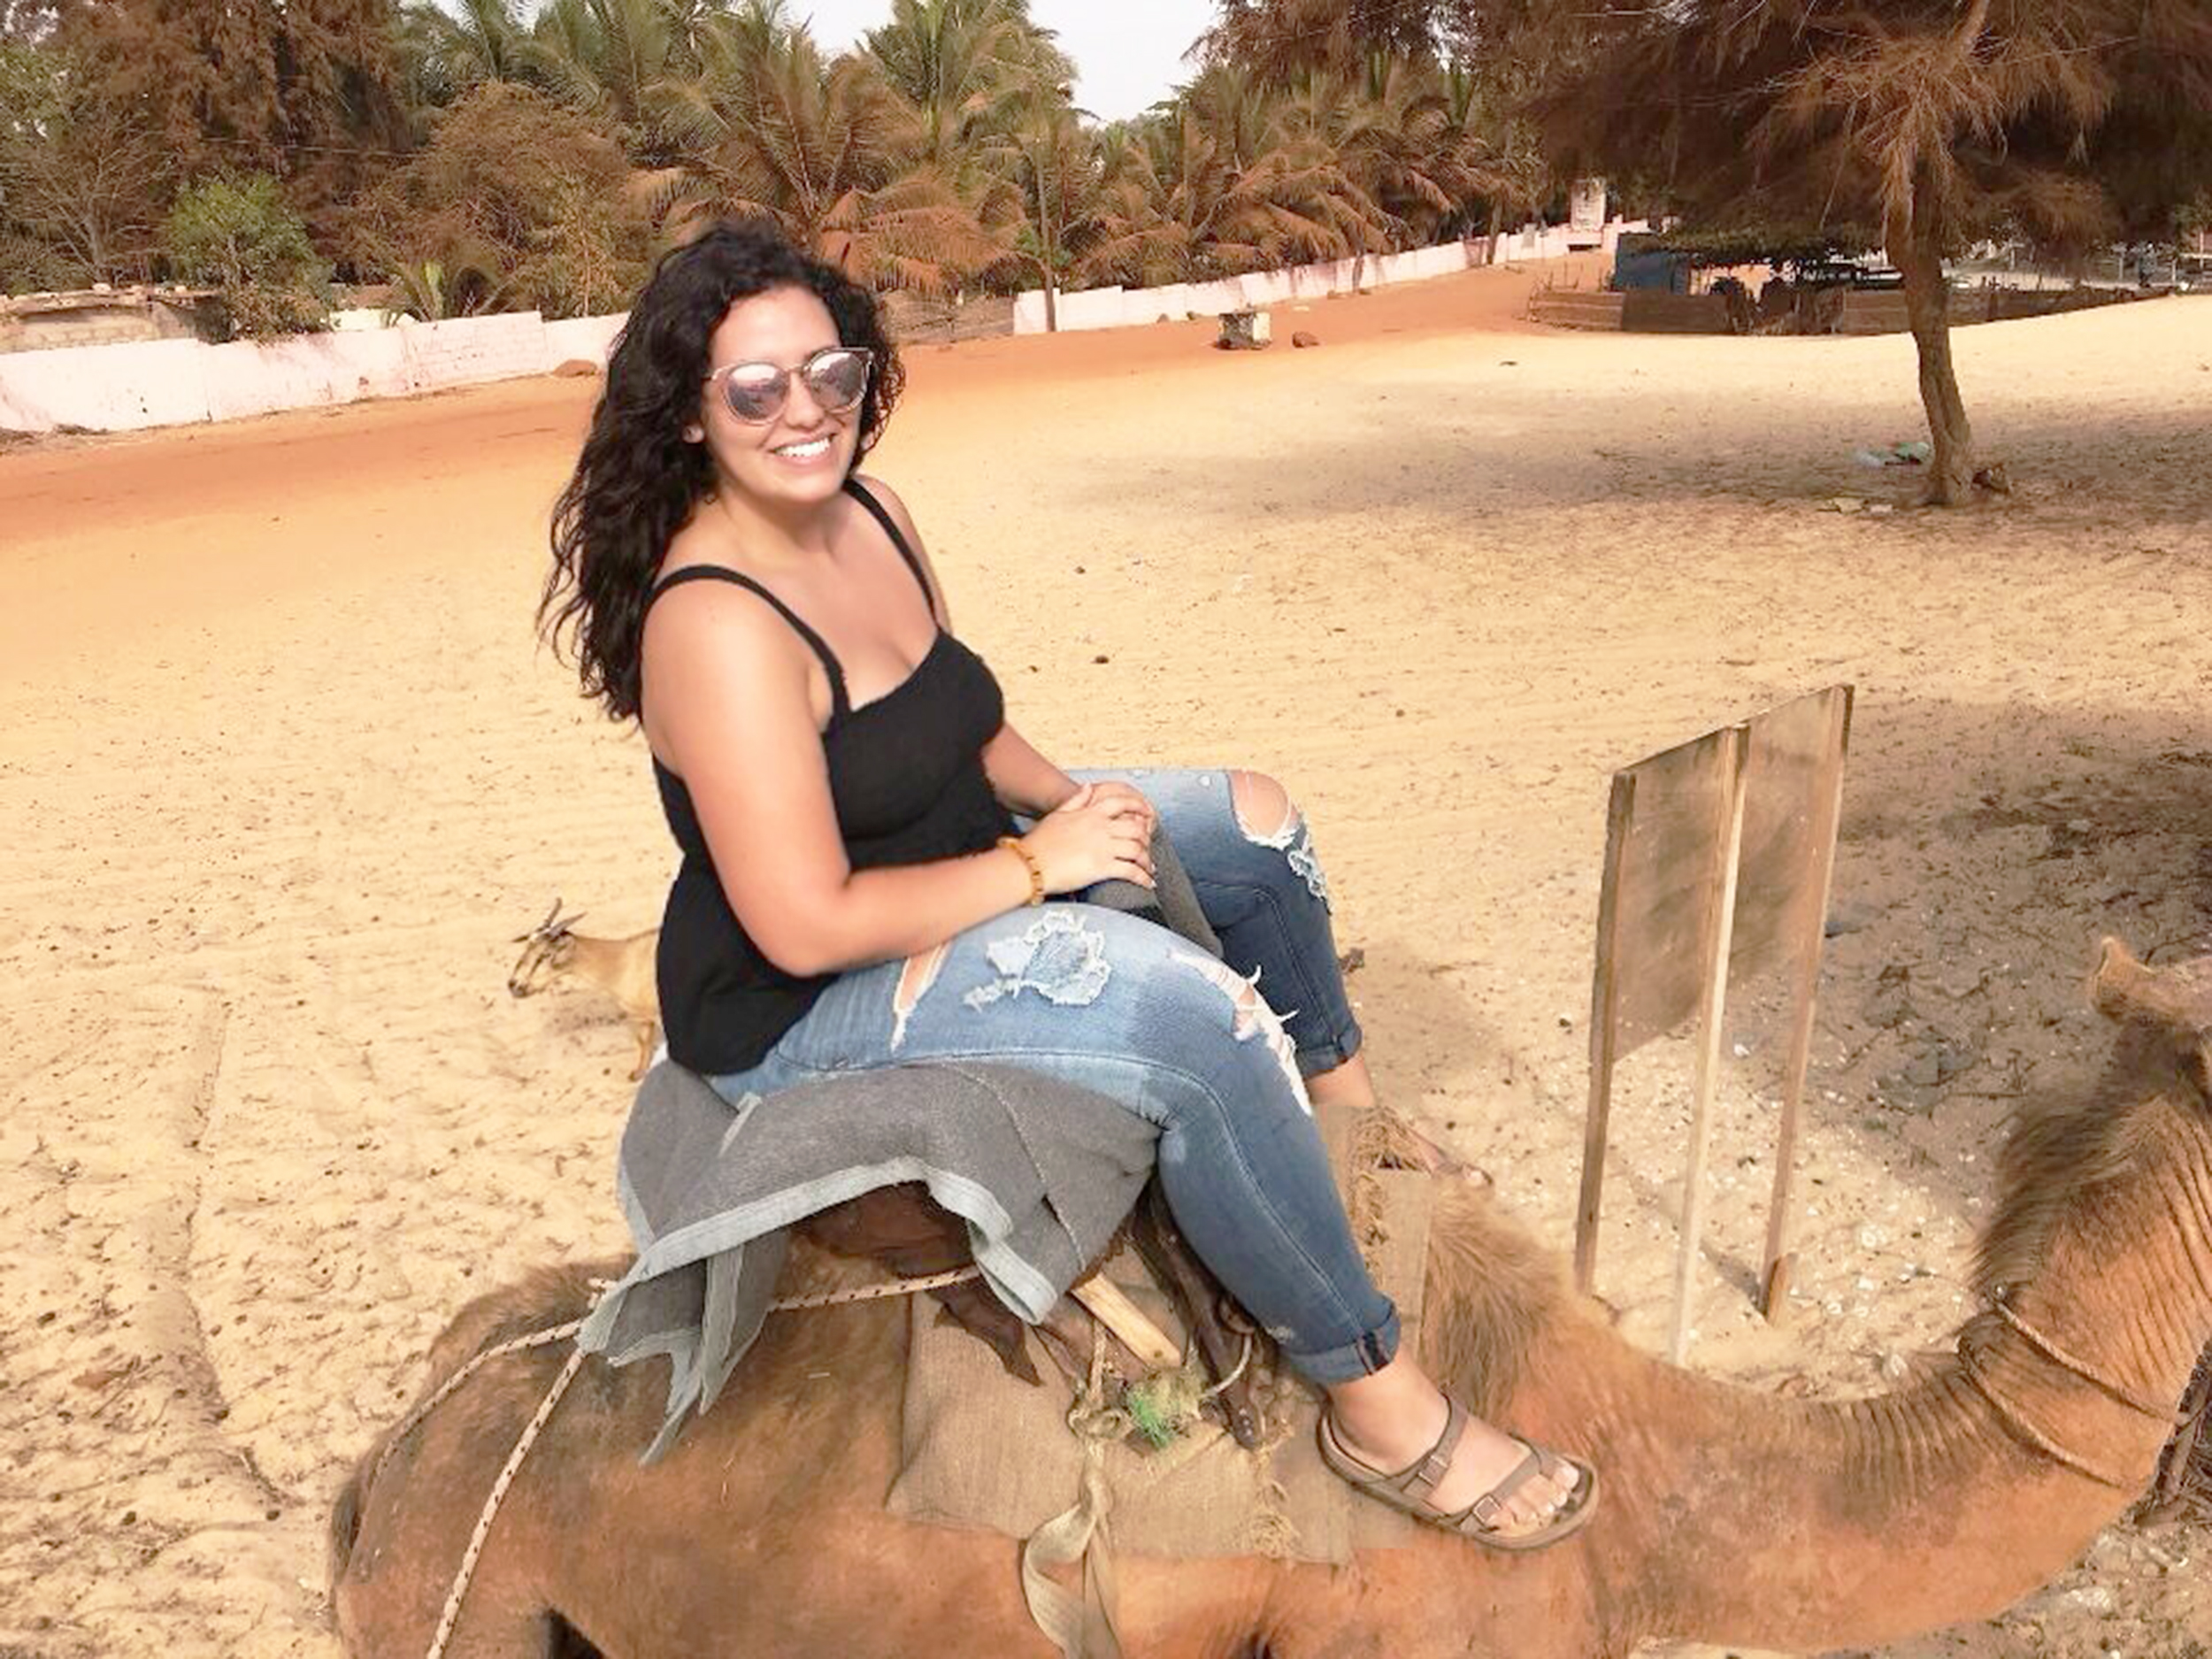 Casey Ellis (pictured above) traveled to Dakar, Senegal this past summer through a Geneseo program led by coordinator of the French Language program Kodjo Adabra. Ellis stayed with a host family, which allowed her to fully experience the French-speaking culture while improving her fluency in the language. (Courtesy of Casey Ellis)